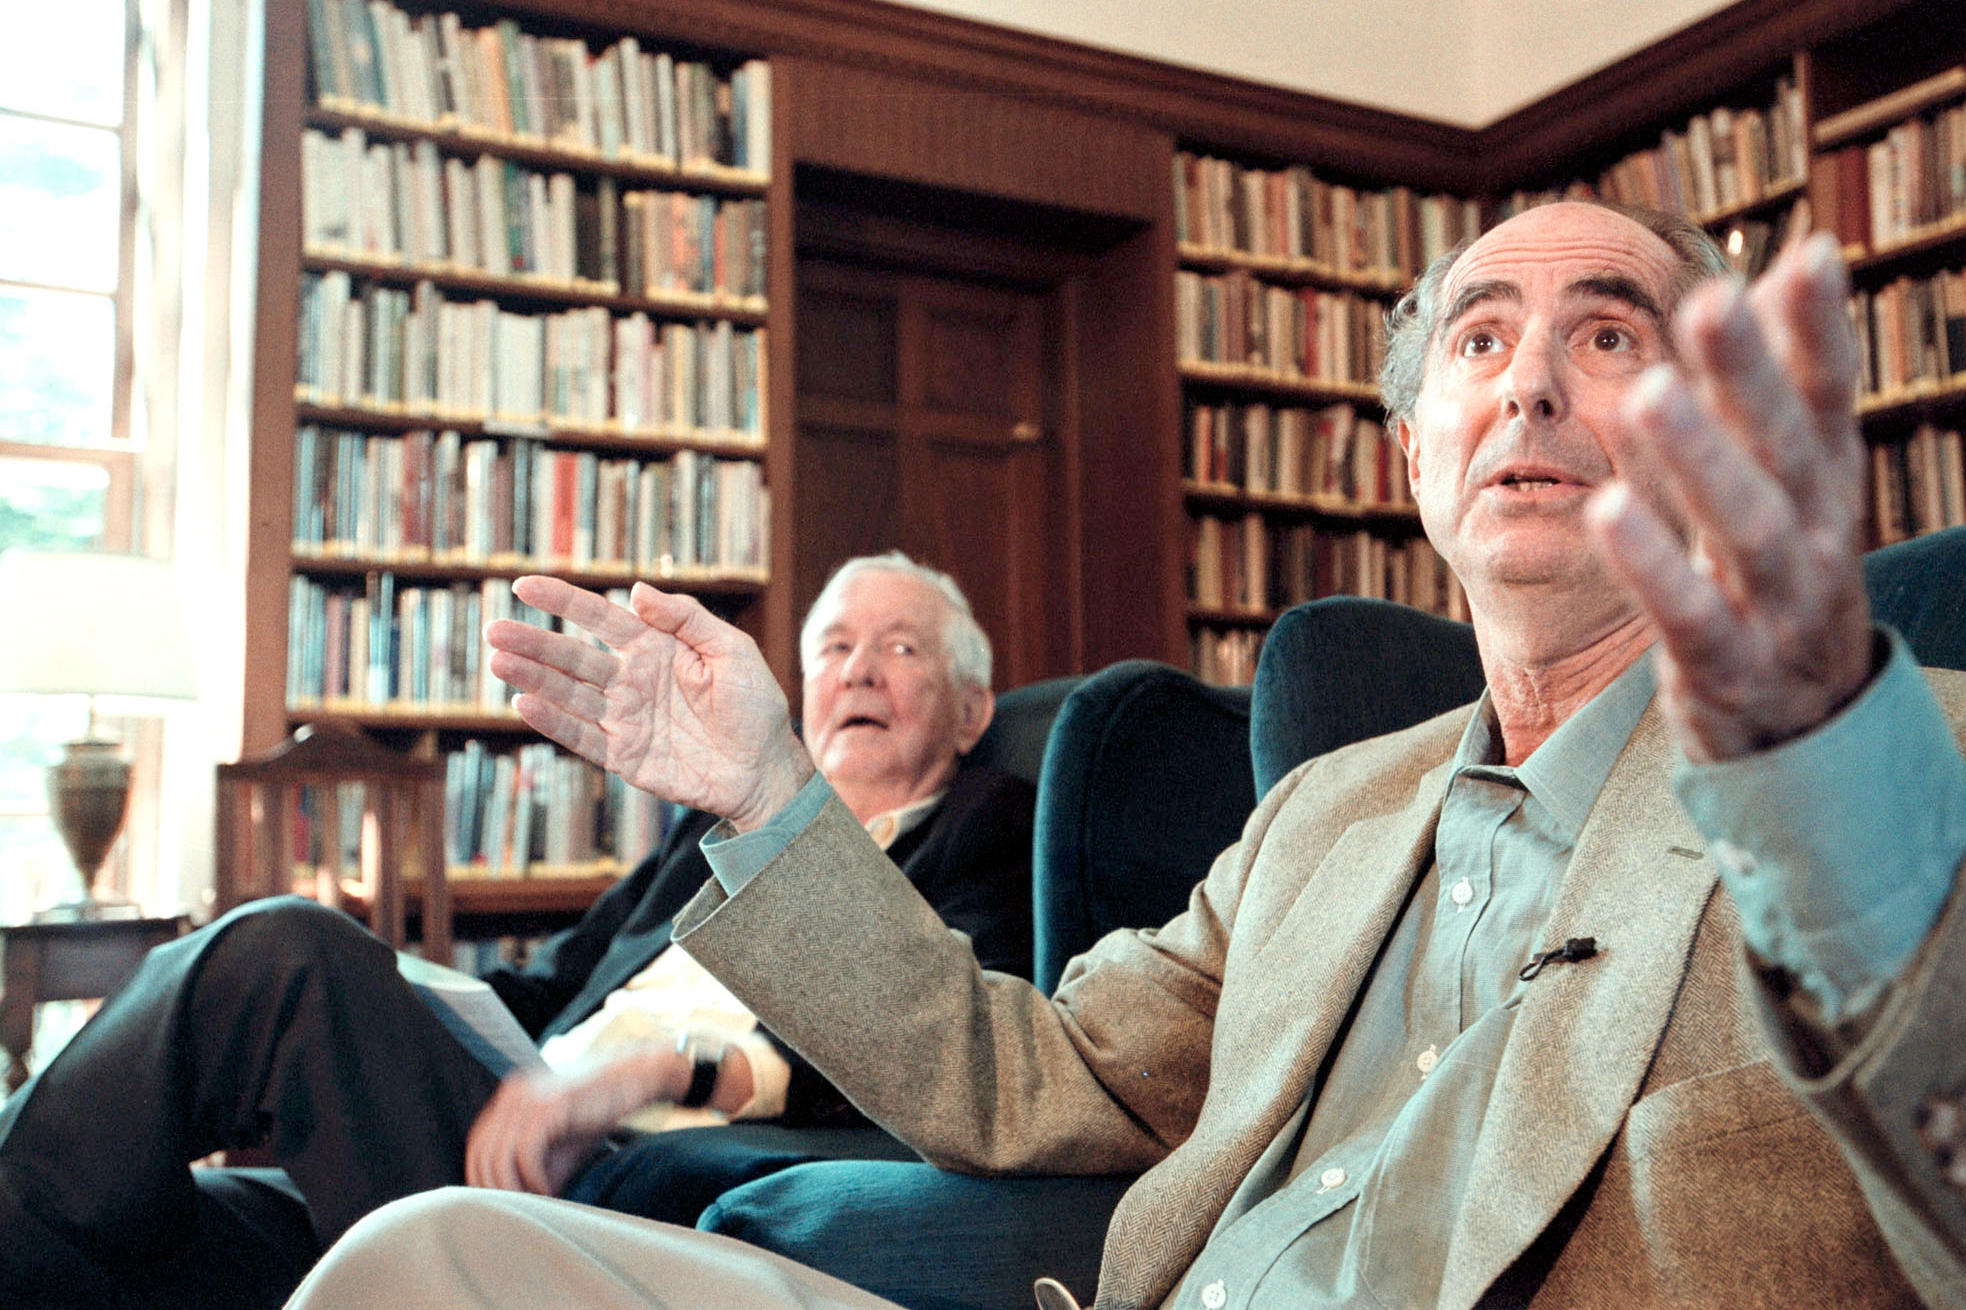 Roth answers questions after being awarded the 2001 Edward MacDowell Medal  for his contribution to the arts.